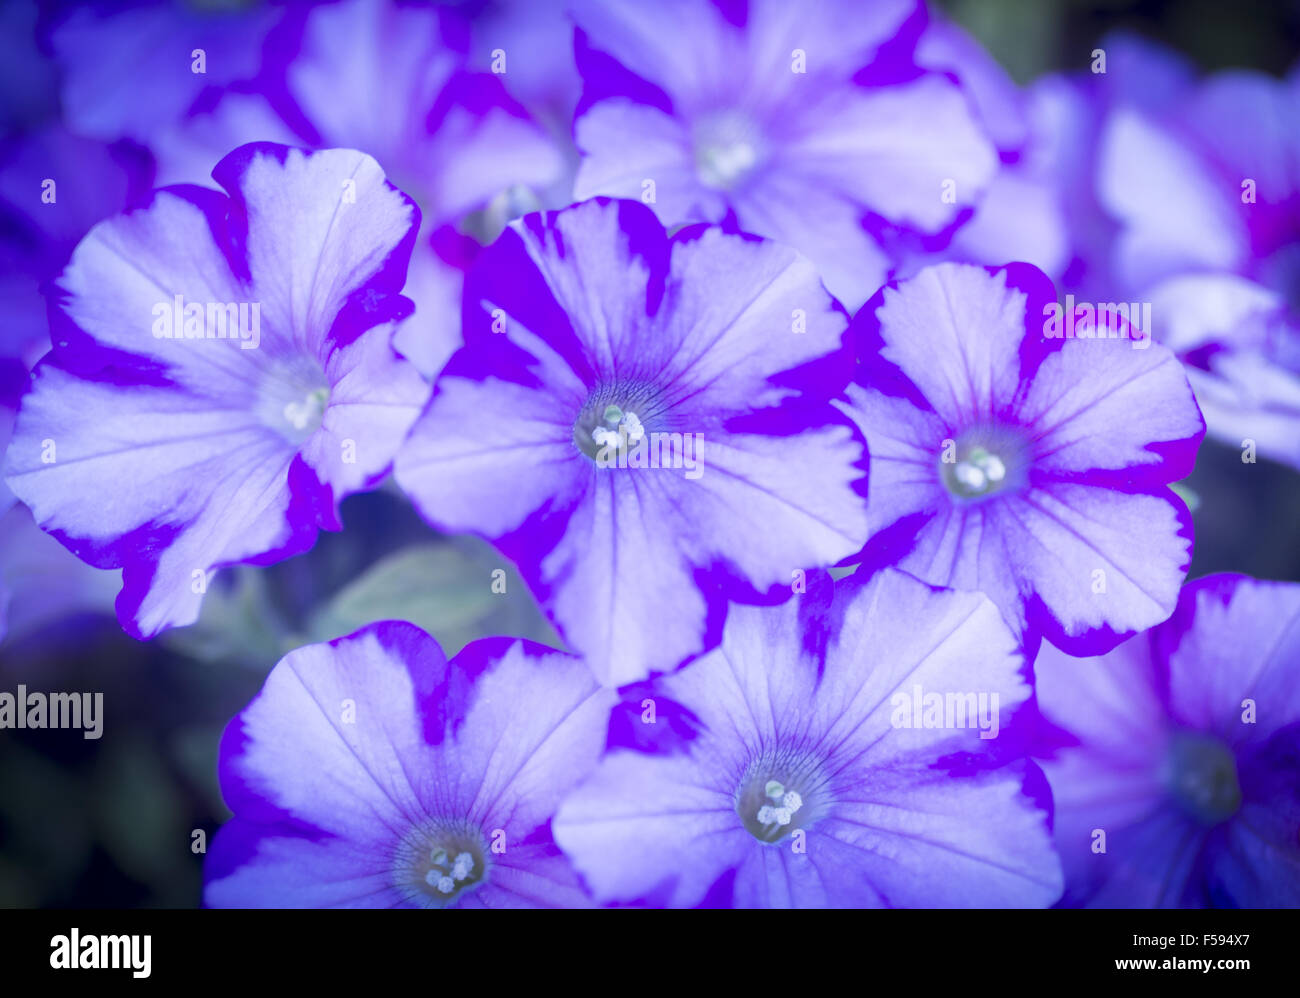 Photo of purple light blue and white flowers in artistic colour photo of purple light blue and white flowers in artistic colour tones with shallow depth dhlflorist Image collections